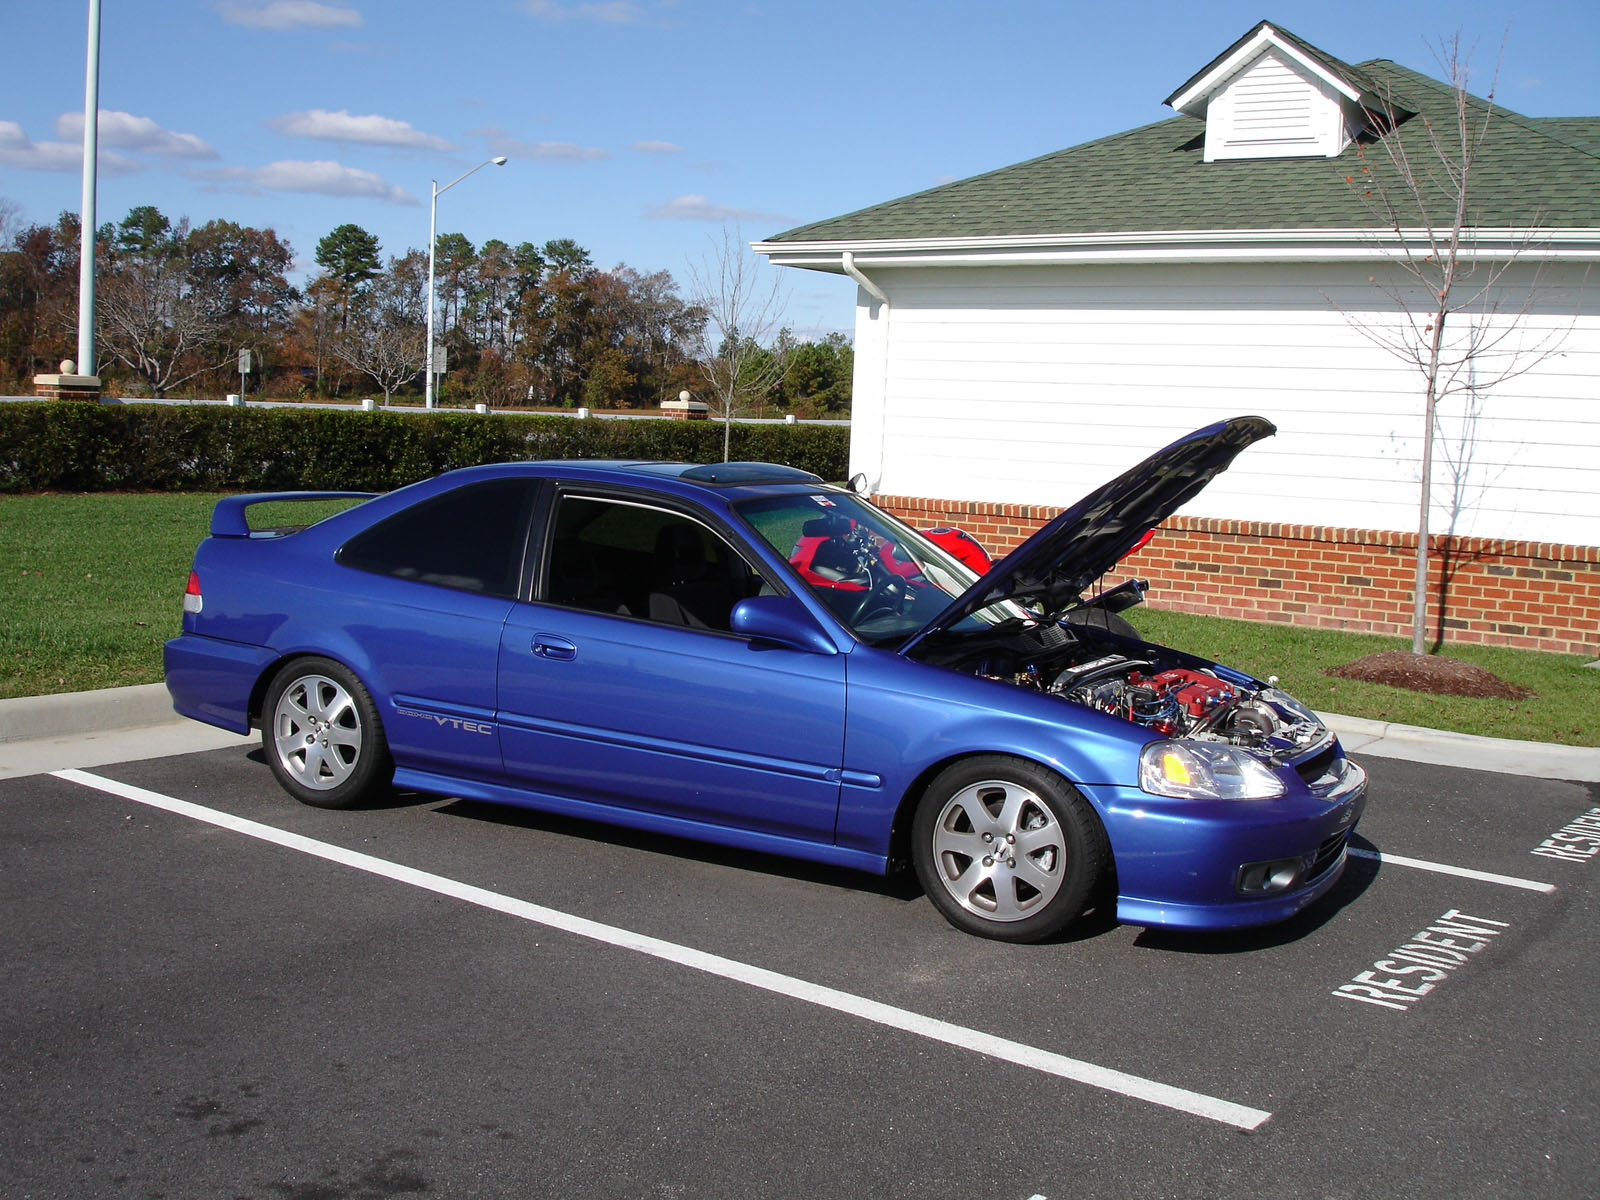 1999 honda civic si for sale virginia beach virginia. Black Bedroom Furniture Sets. Home Design Ideas